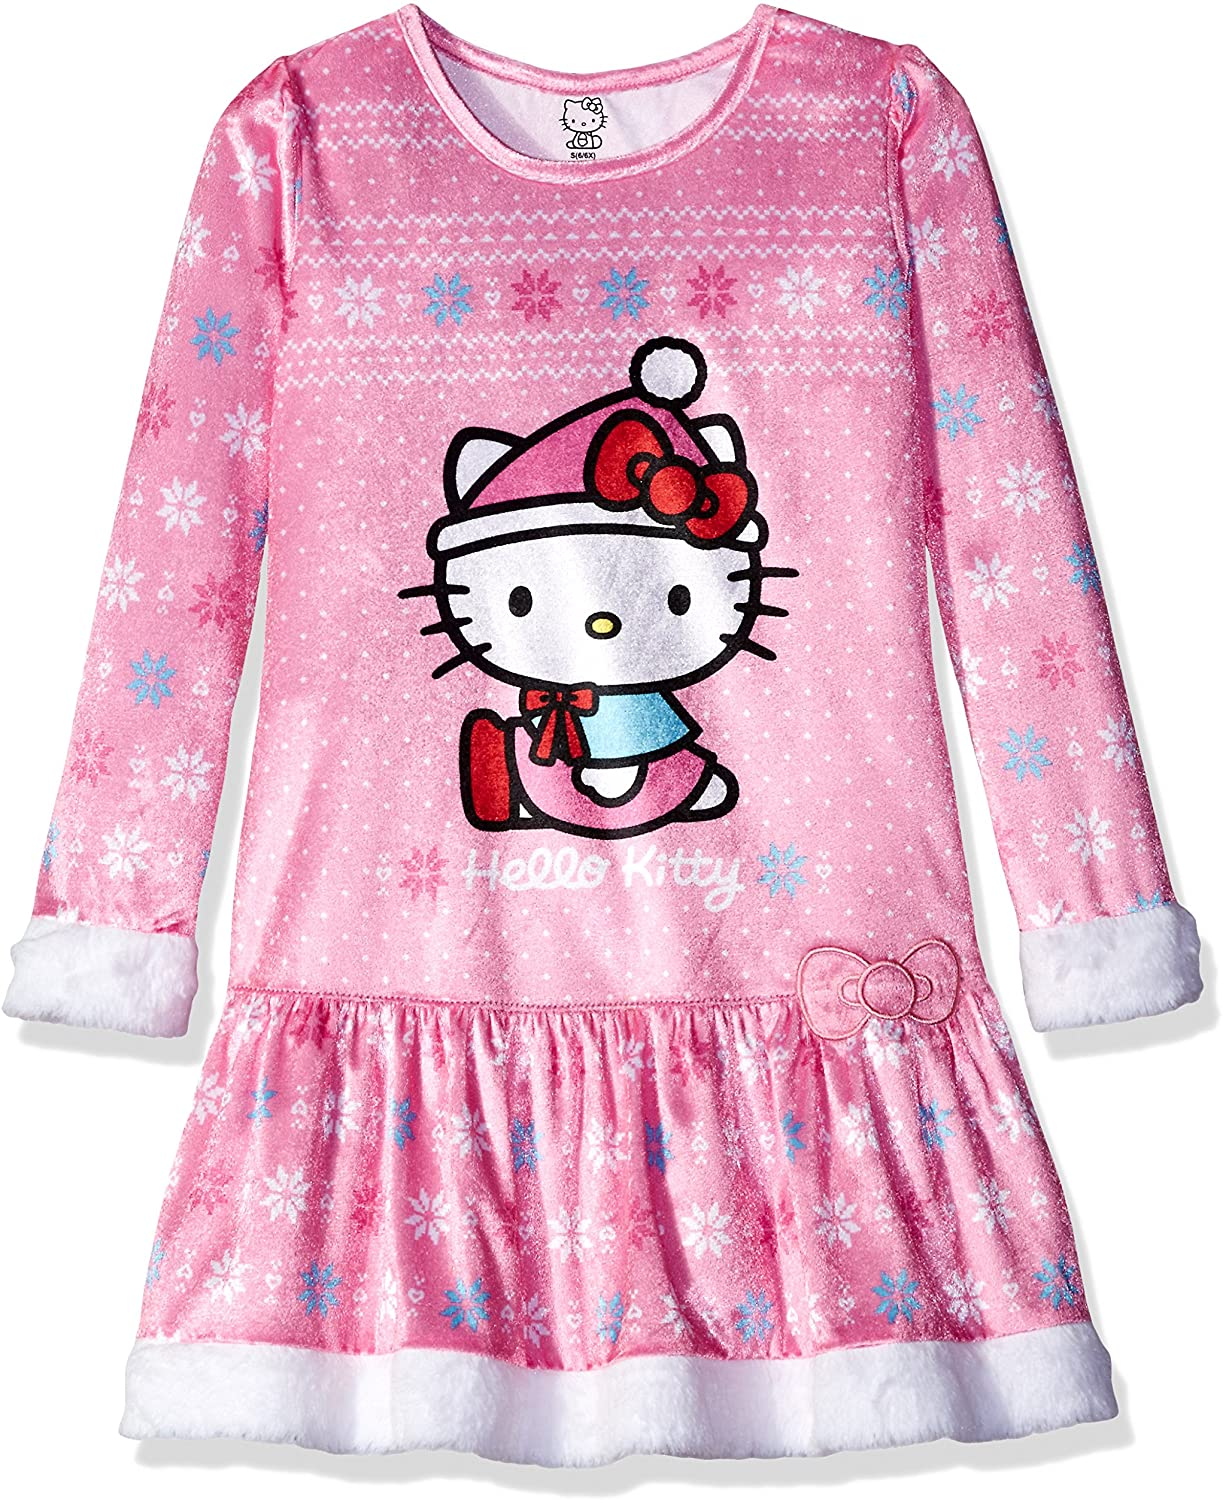 hello kitty pijamas 10